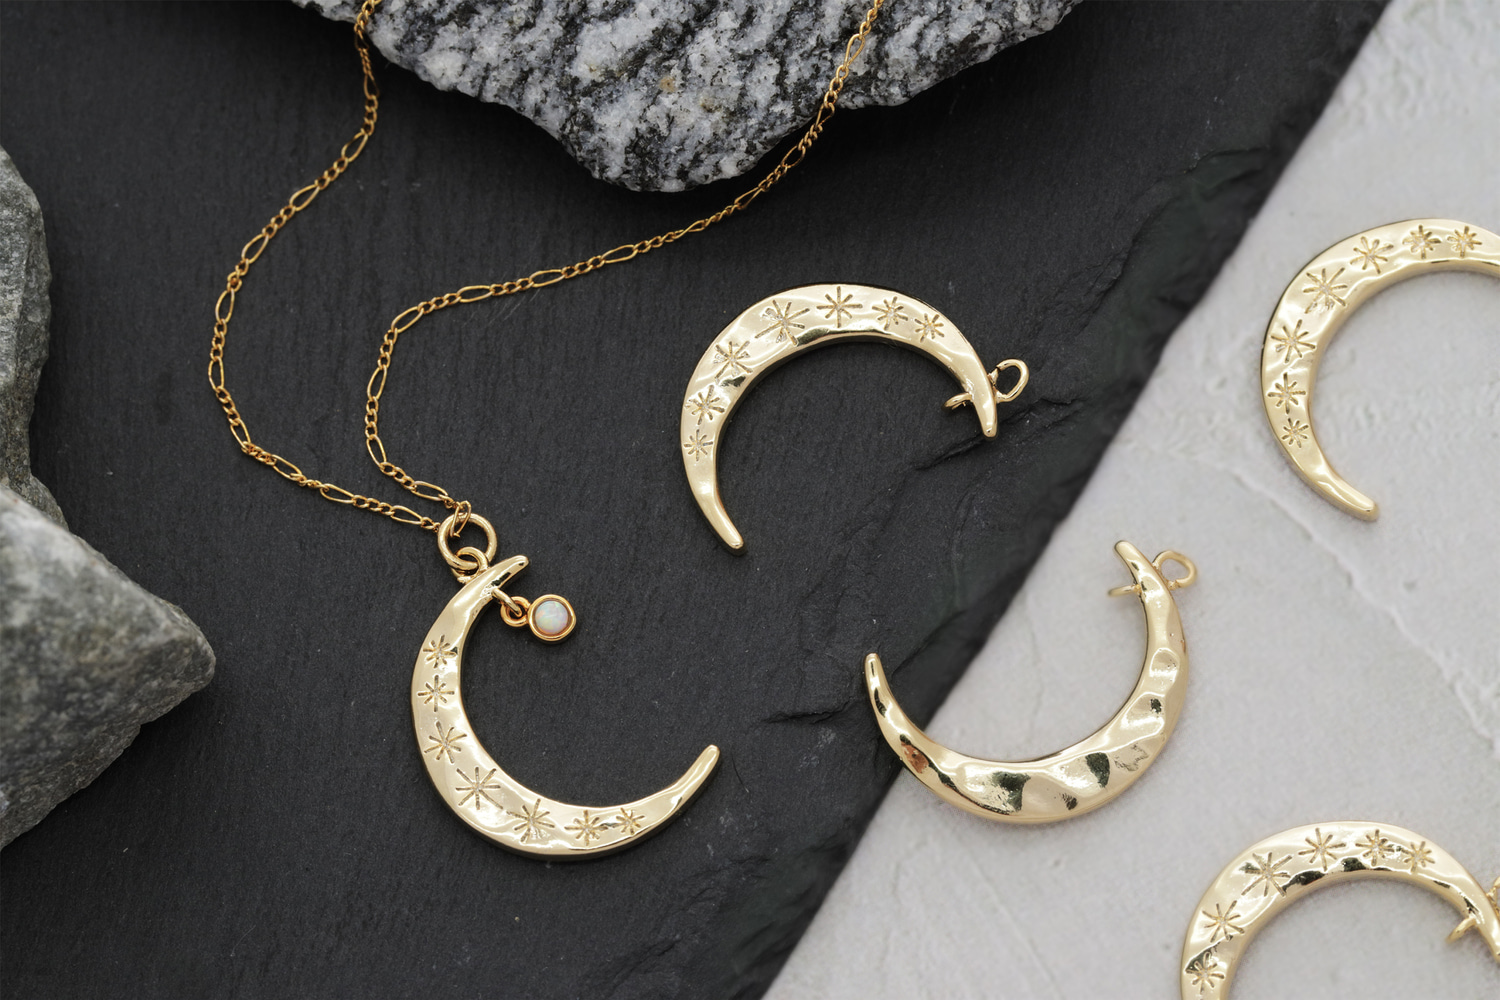 [N45-R2] Charm ONLY, Crescent moon charm w/ 2 loops, Gold plated brass, Jewelry making supplies, Necklace making pendant, 1 piece